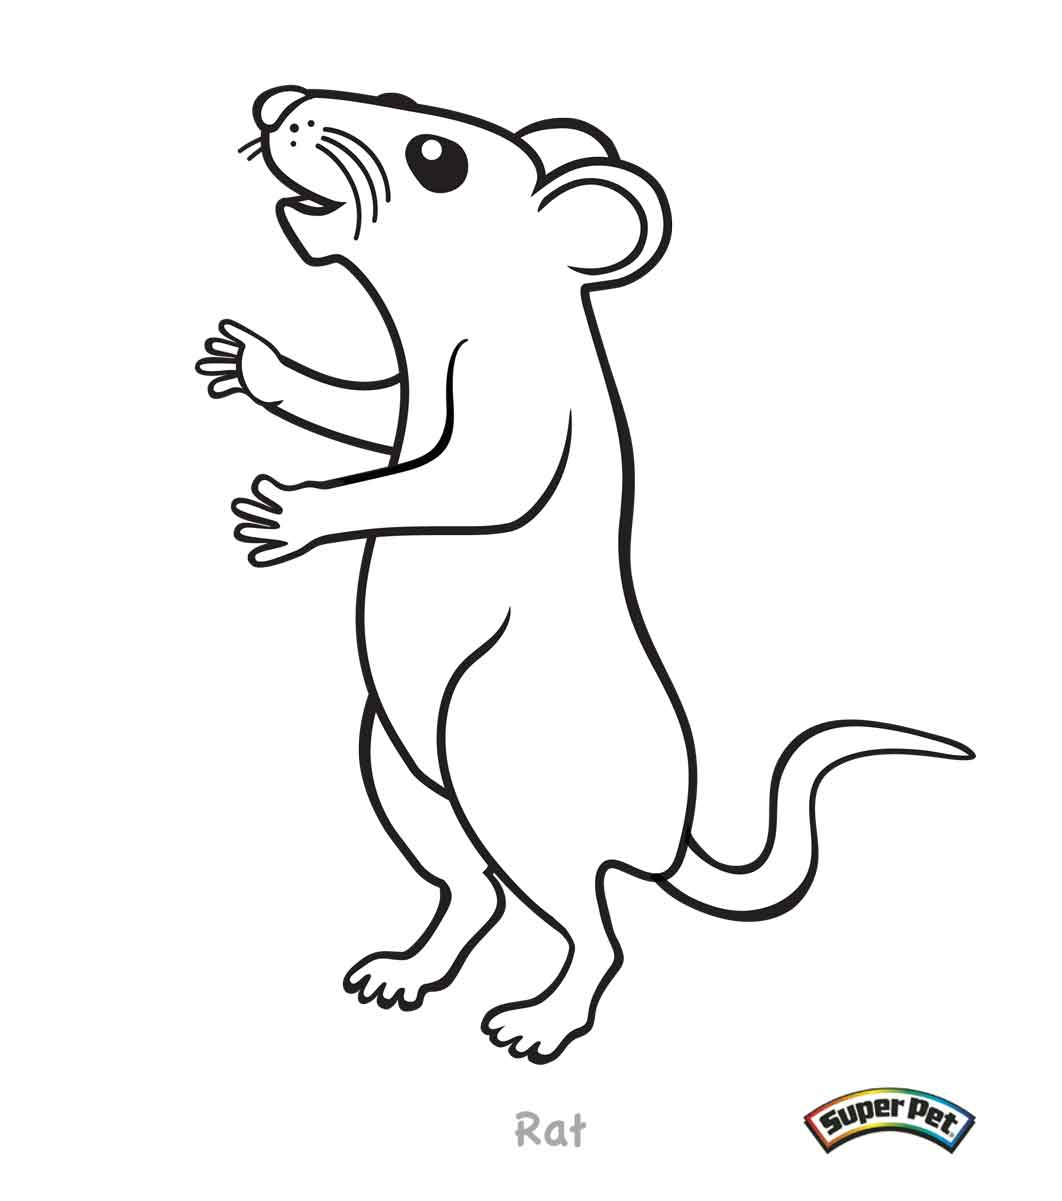 Coloring Book Small Rats Coloring Coloring Pages